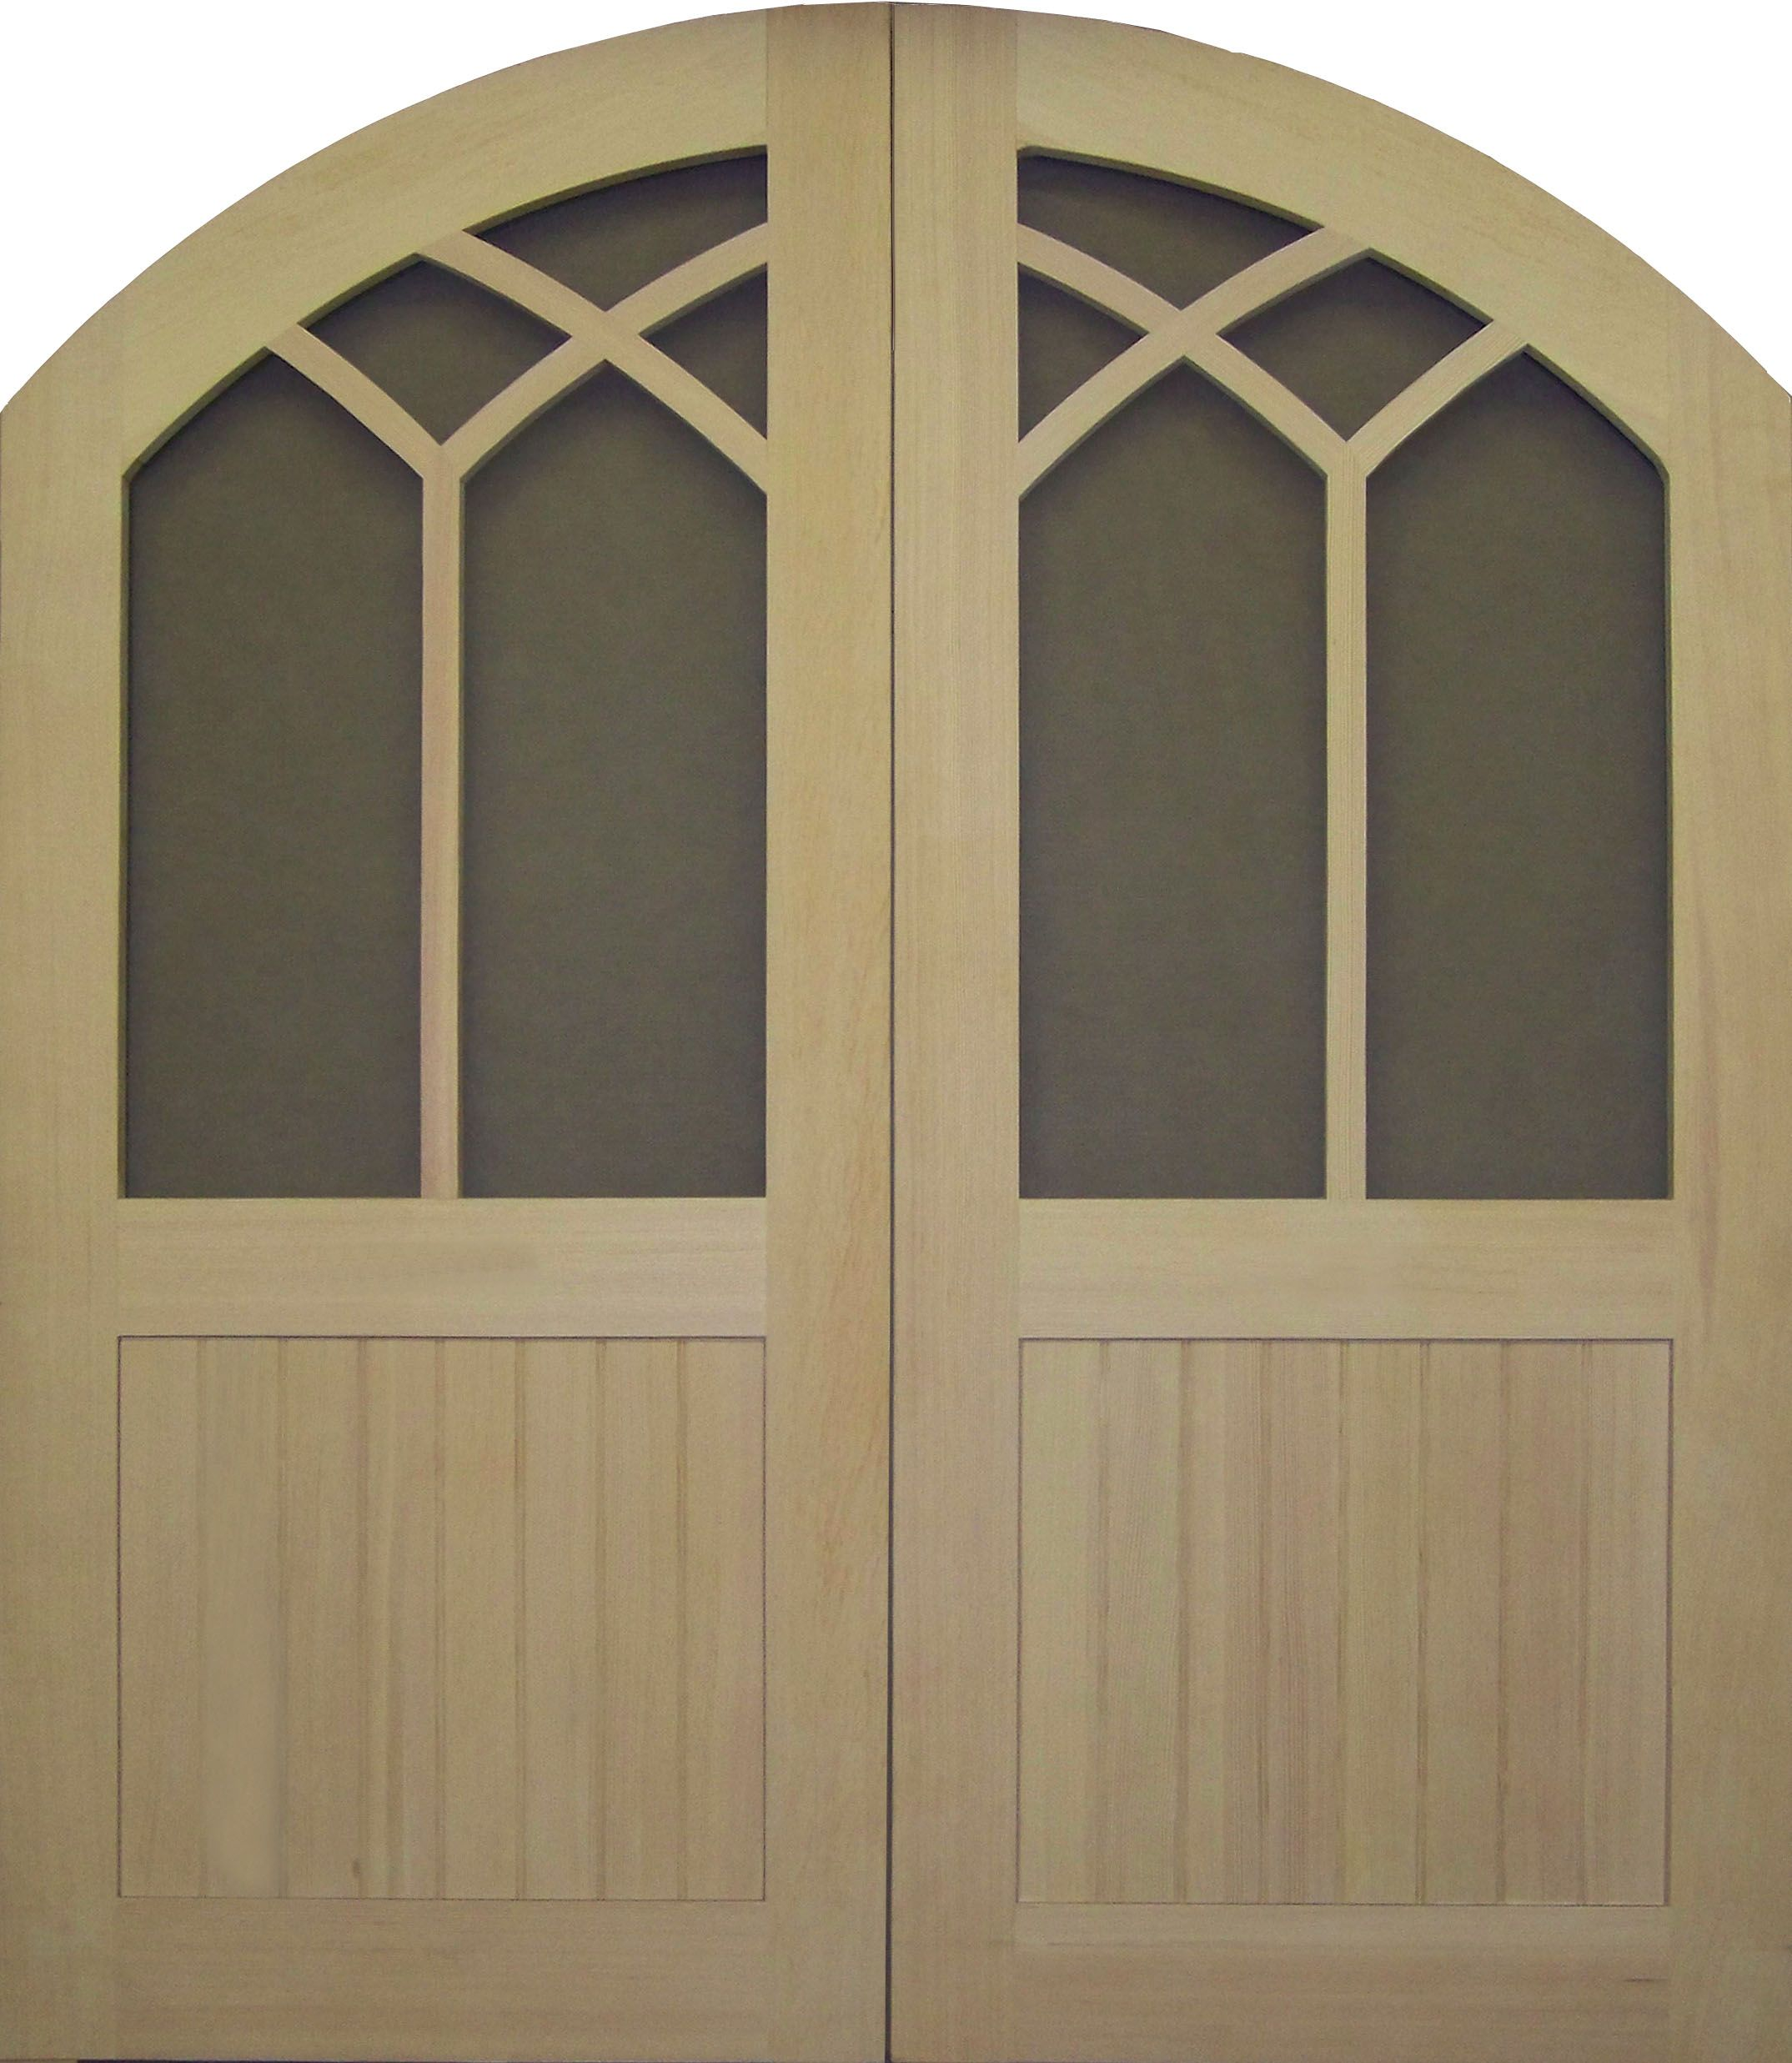 Round top front door window inserts - Arch And Round Top Screen Storm Door Double Round Top Custom Design Www